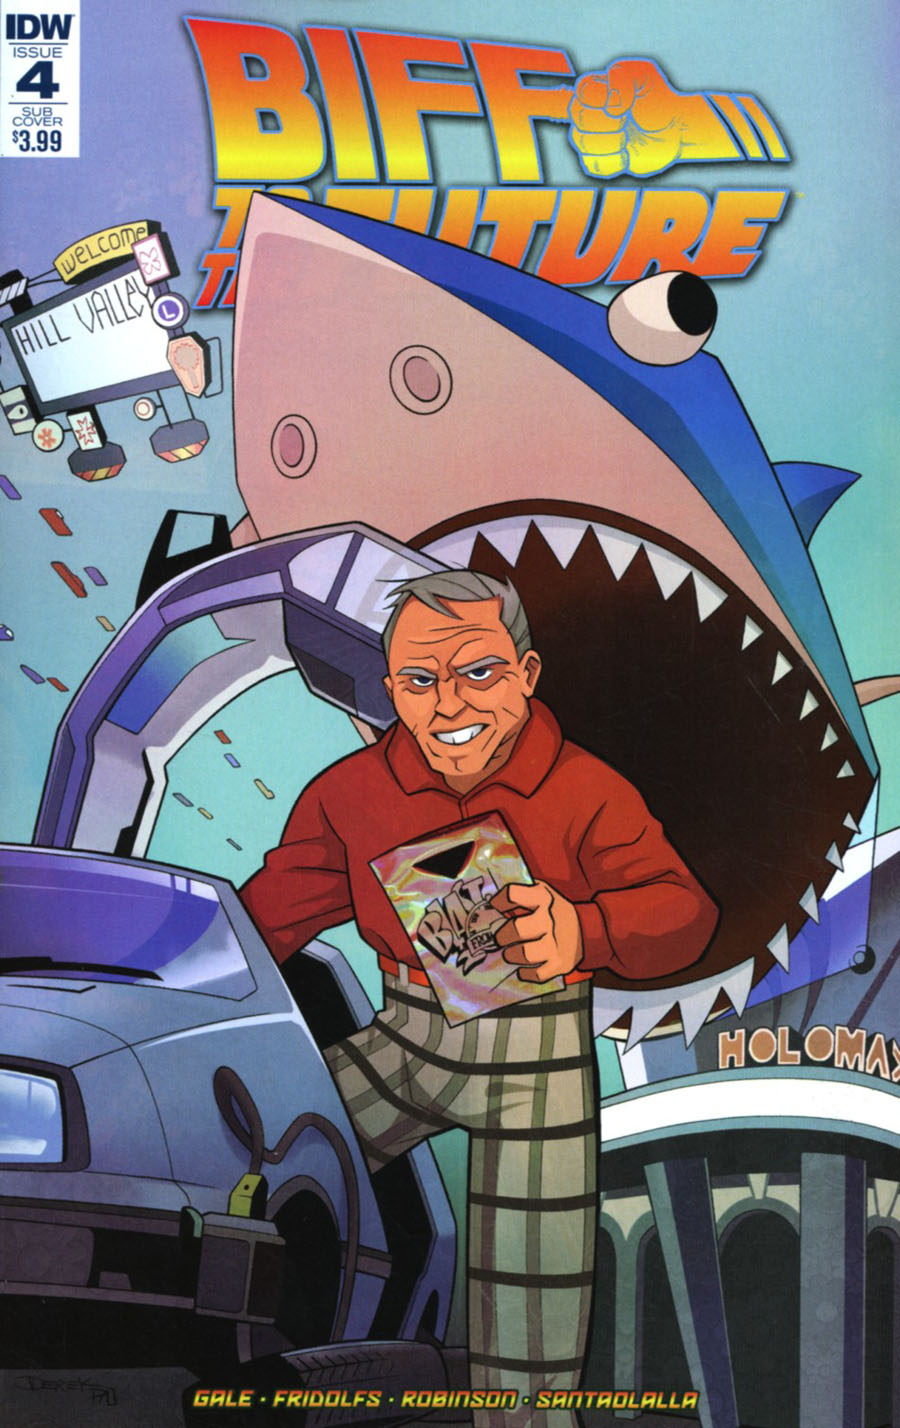 Back To The Future Biff To The Future #4 Cover B Variant Derek Fridolfs Subscription Cover